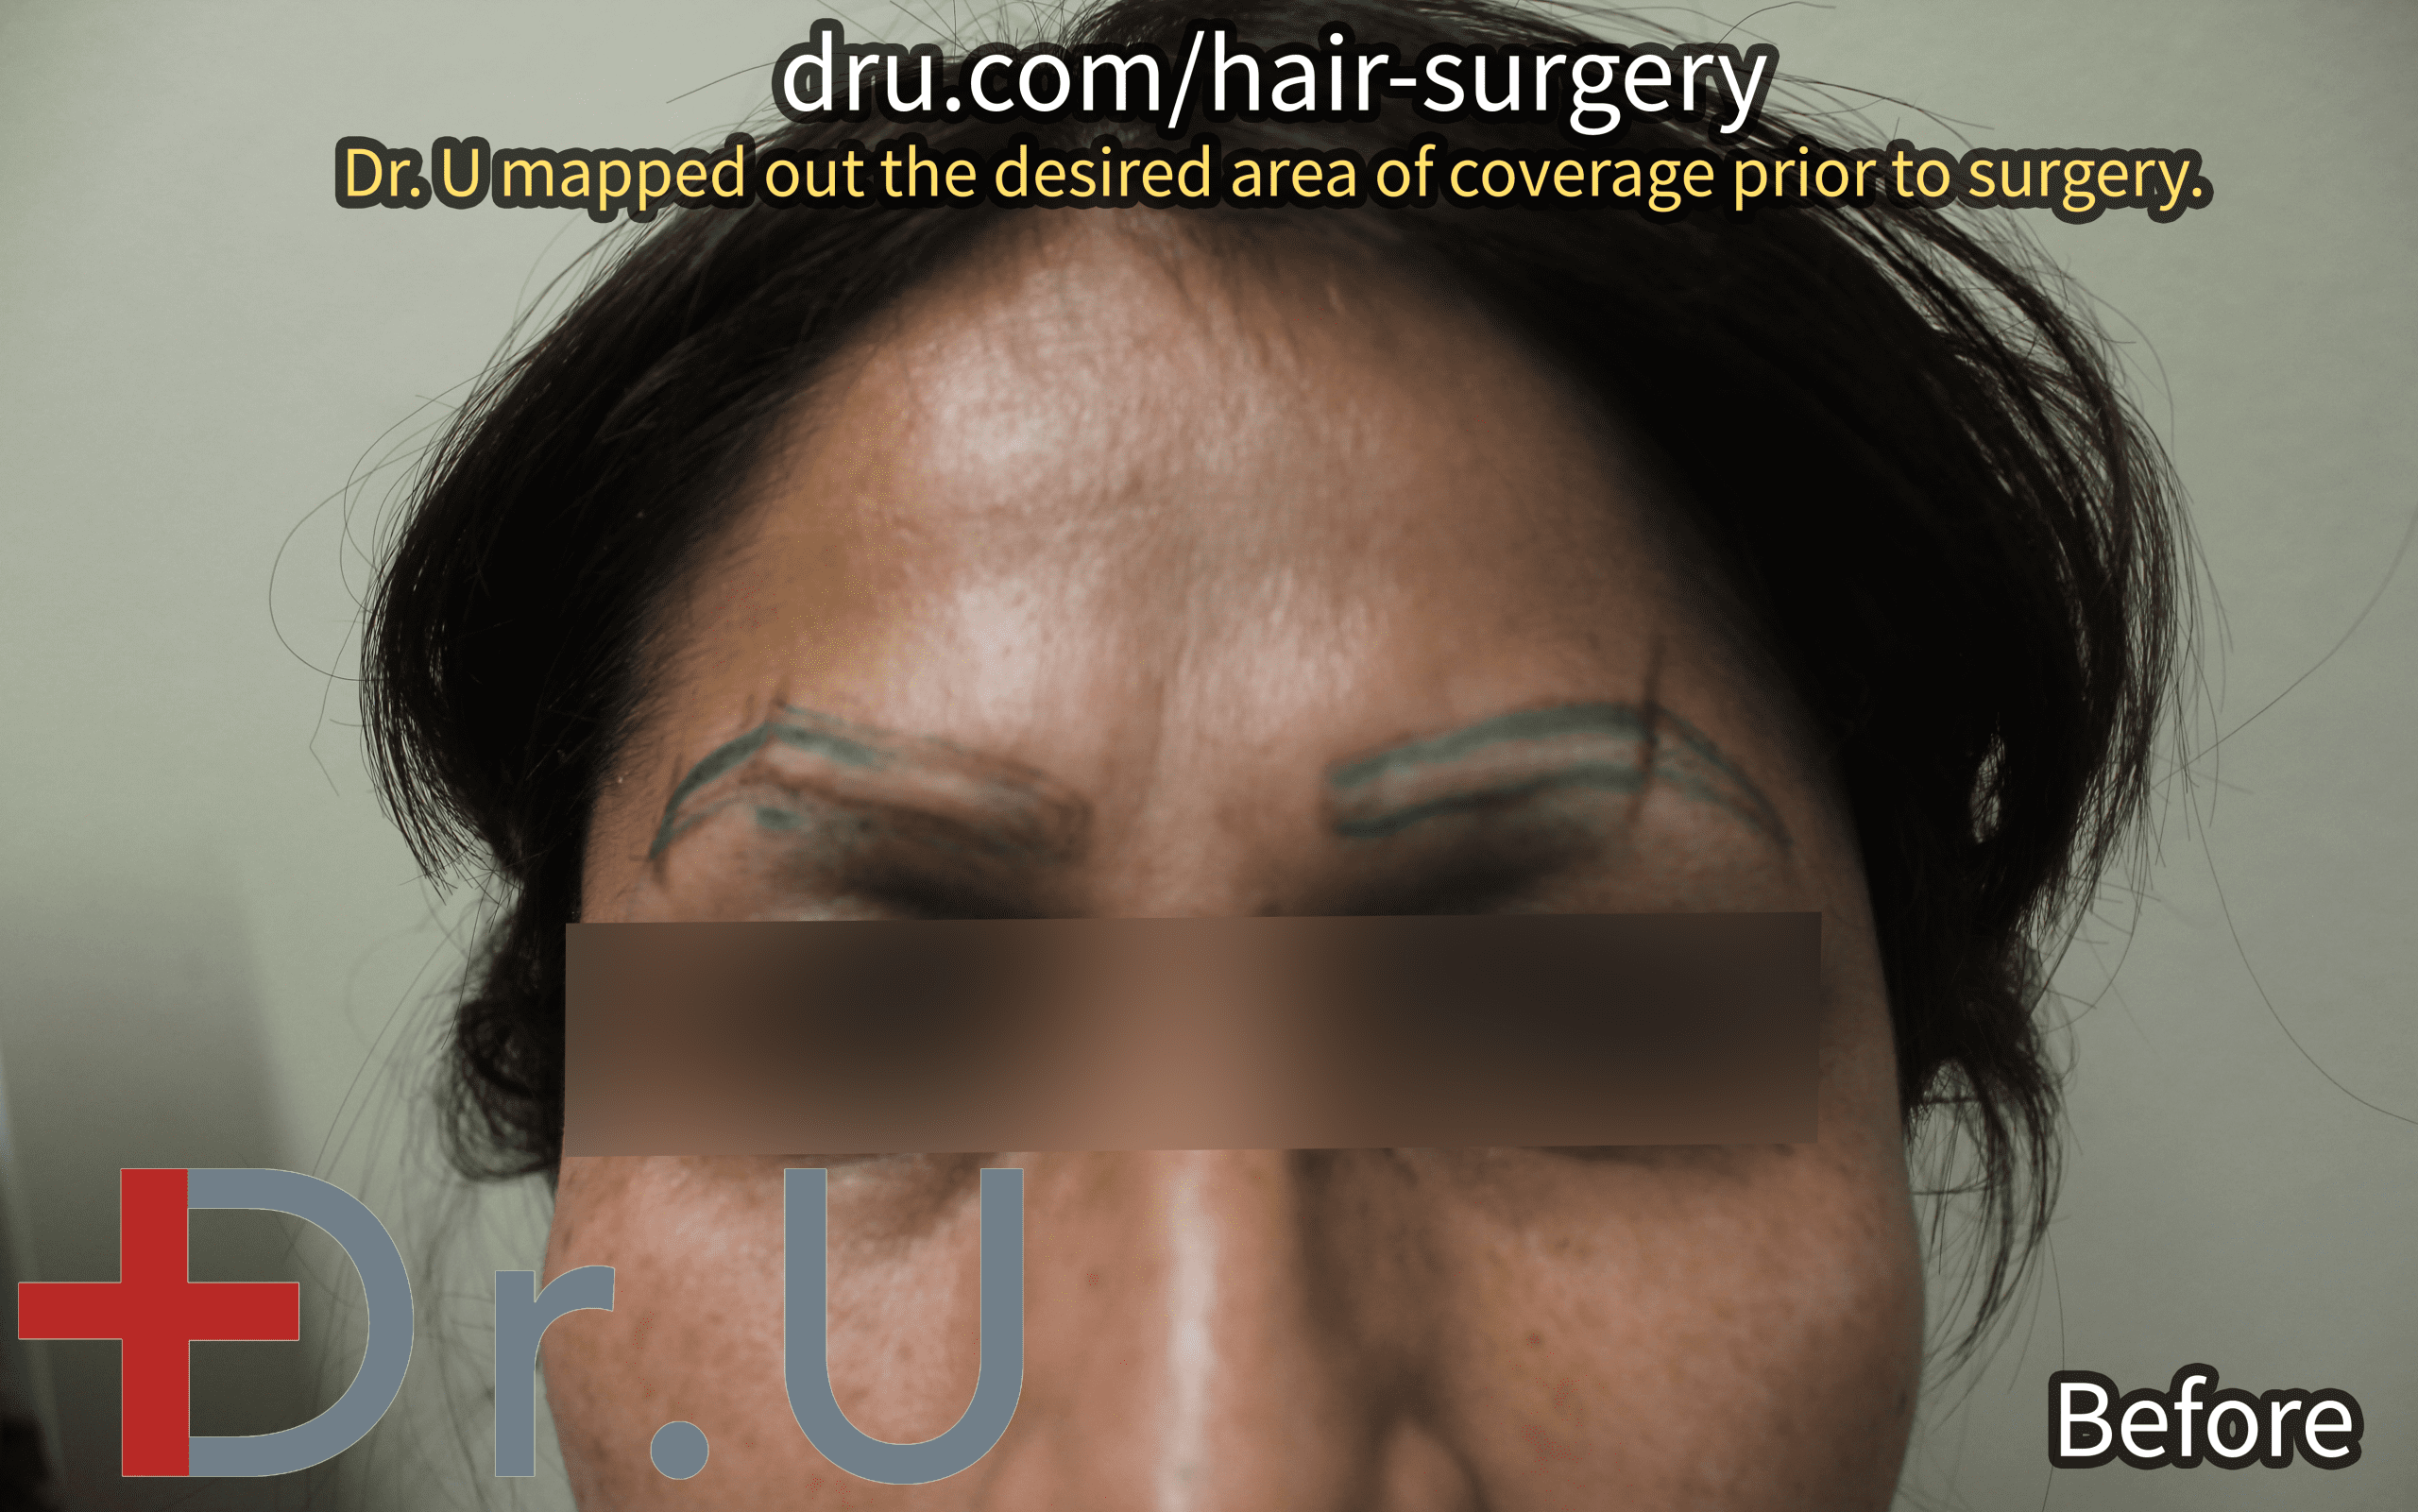 Dr. U mapped out the shape of the patient's eyebrows as they grew prior to her laser tattoo removal.